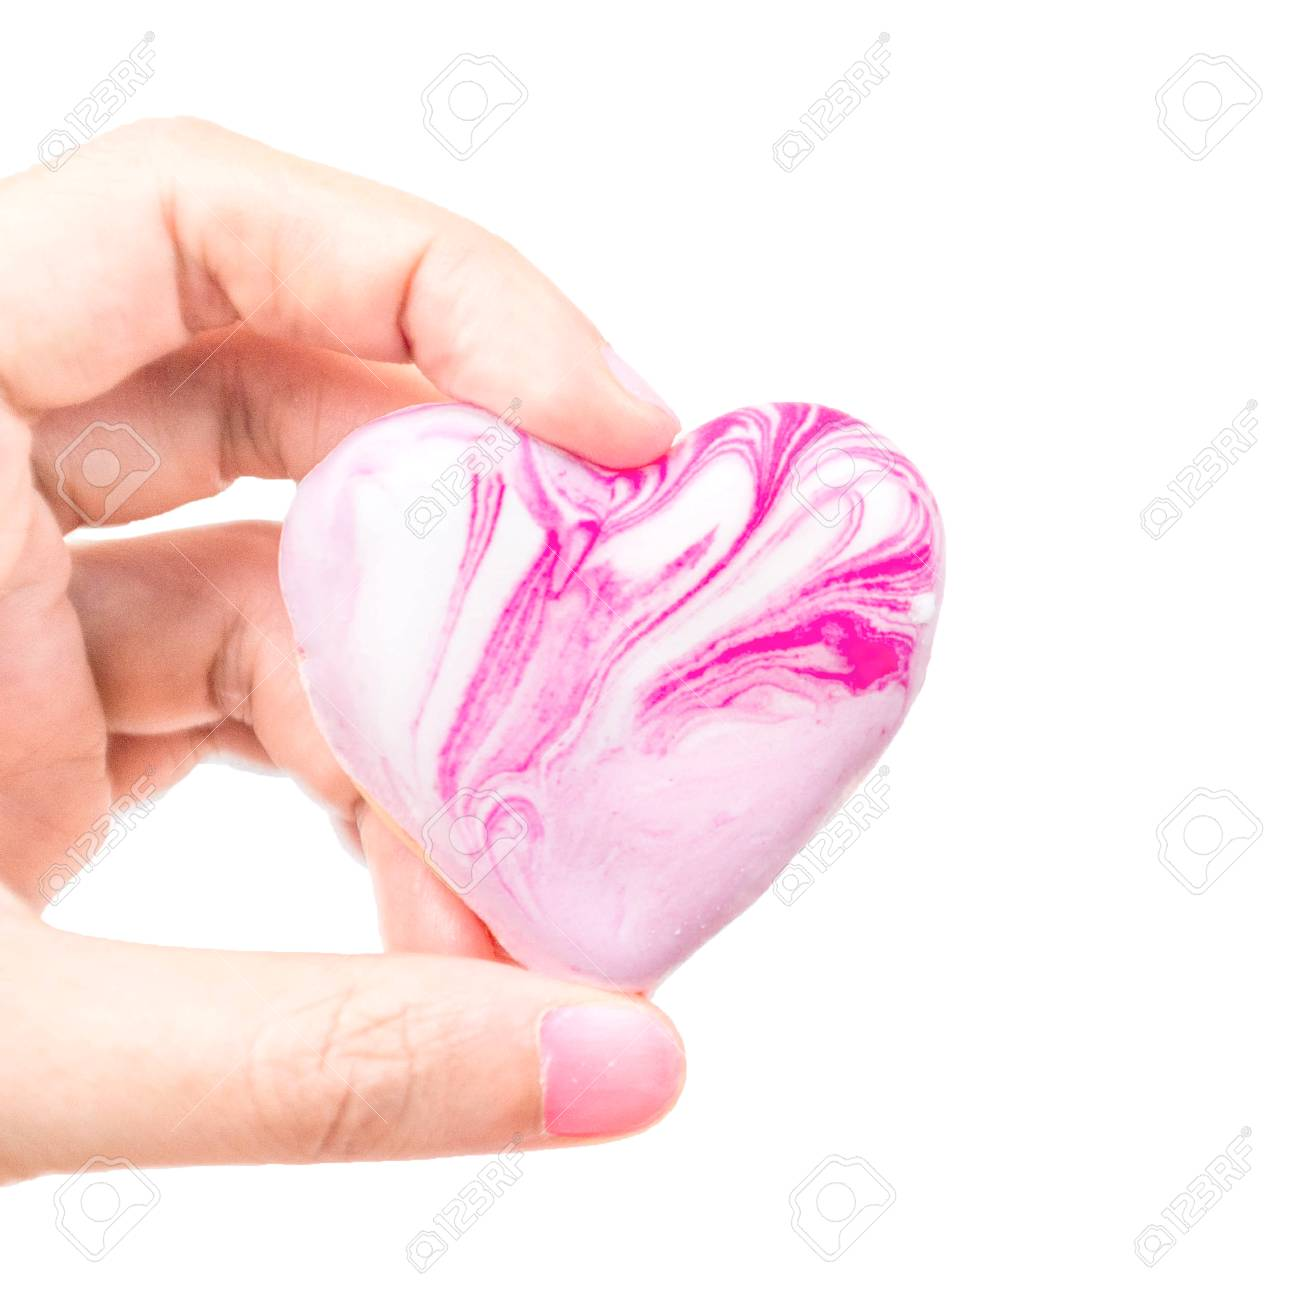 Heart Cookie Lover Pink Biscuit On Hand Holding Love On Marble Stock Photo Picture And Royalty Free Image Image 101971561